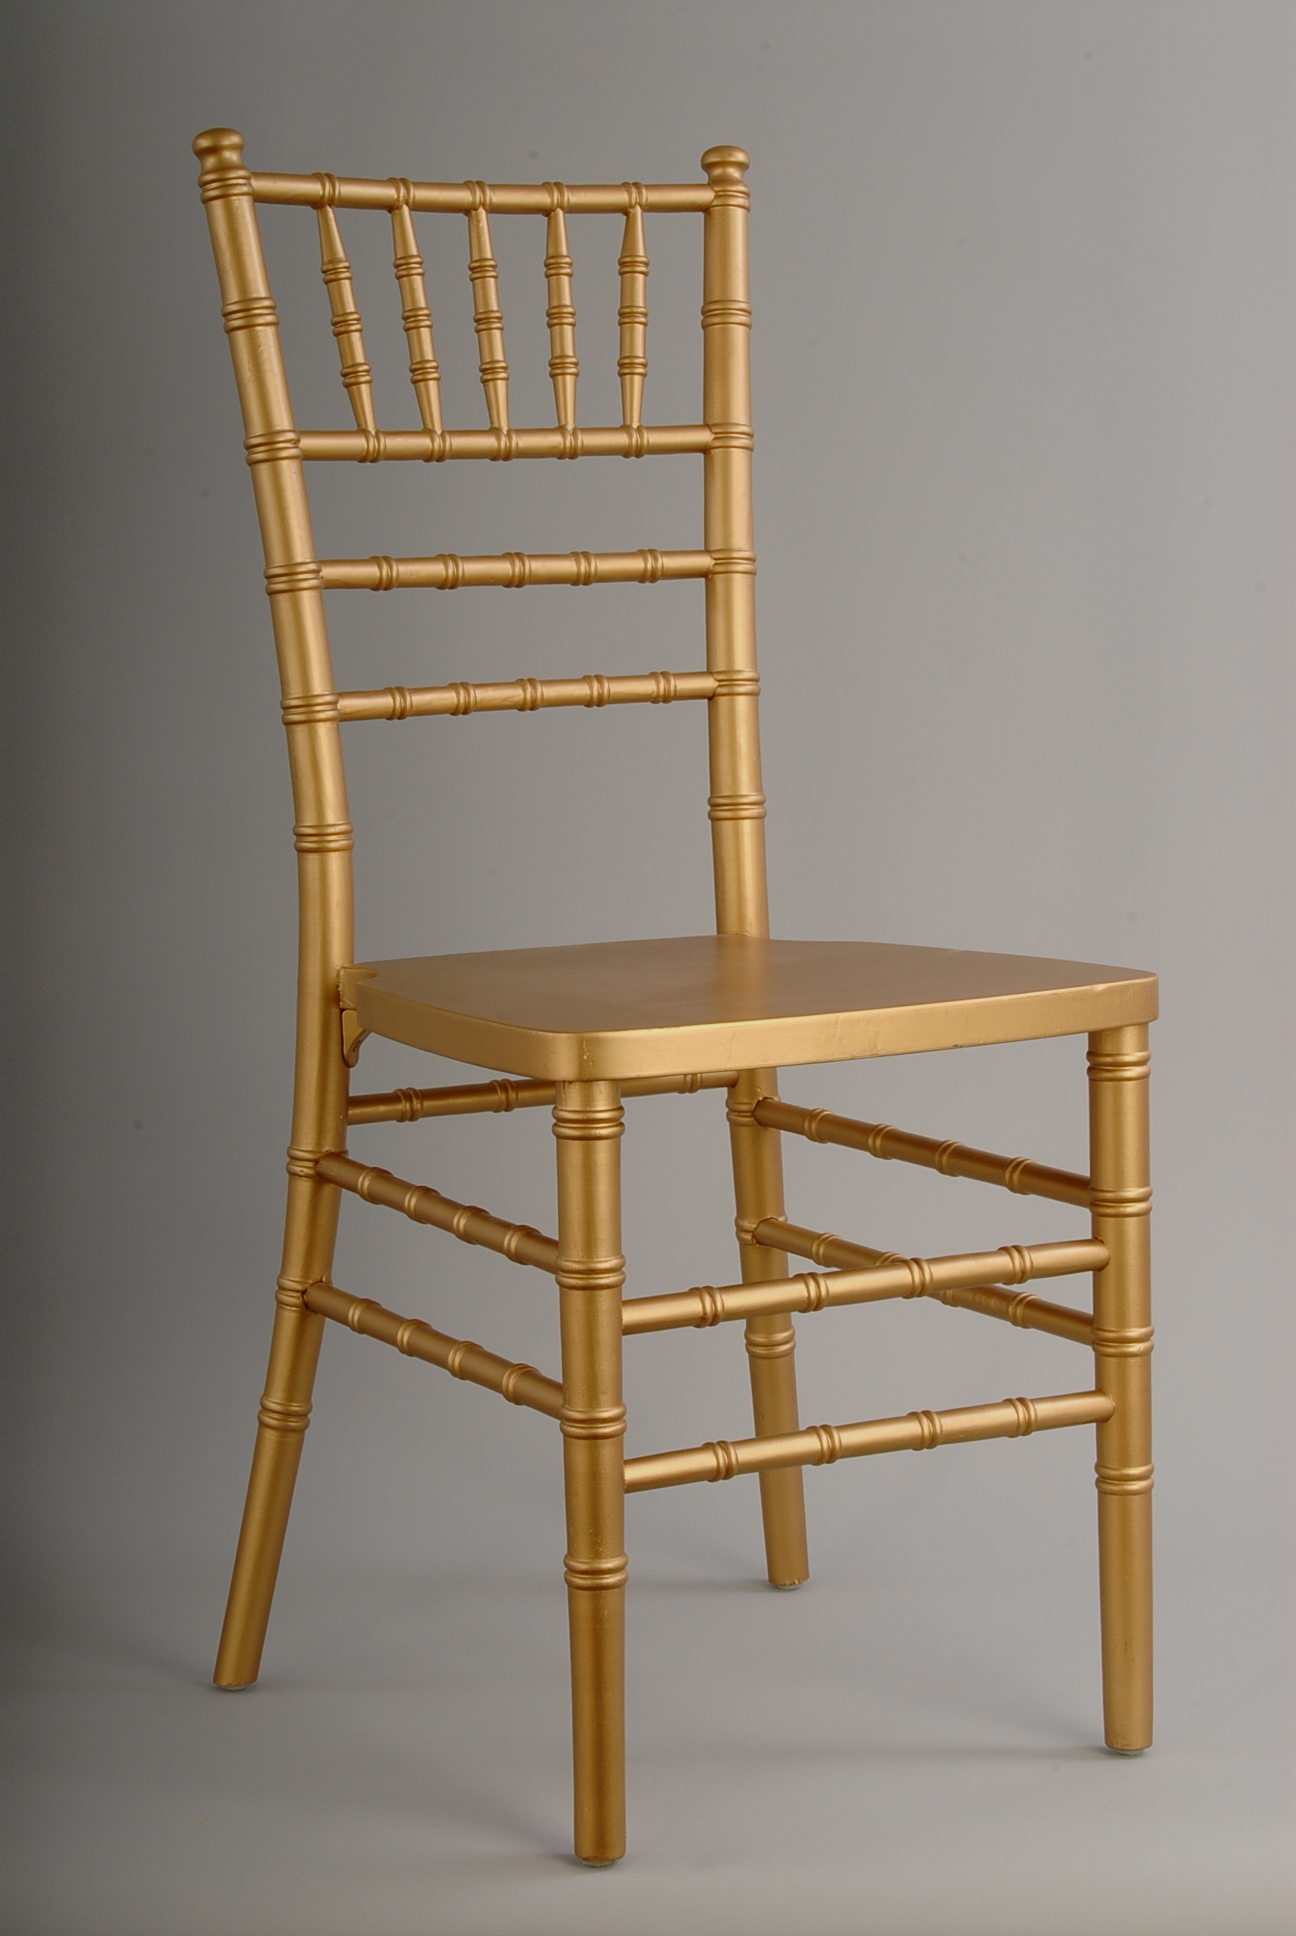 Picture Of A Gold Chivari Ballroom Chair